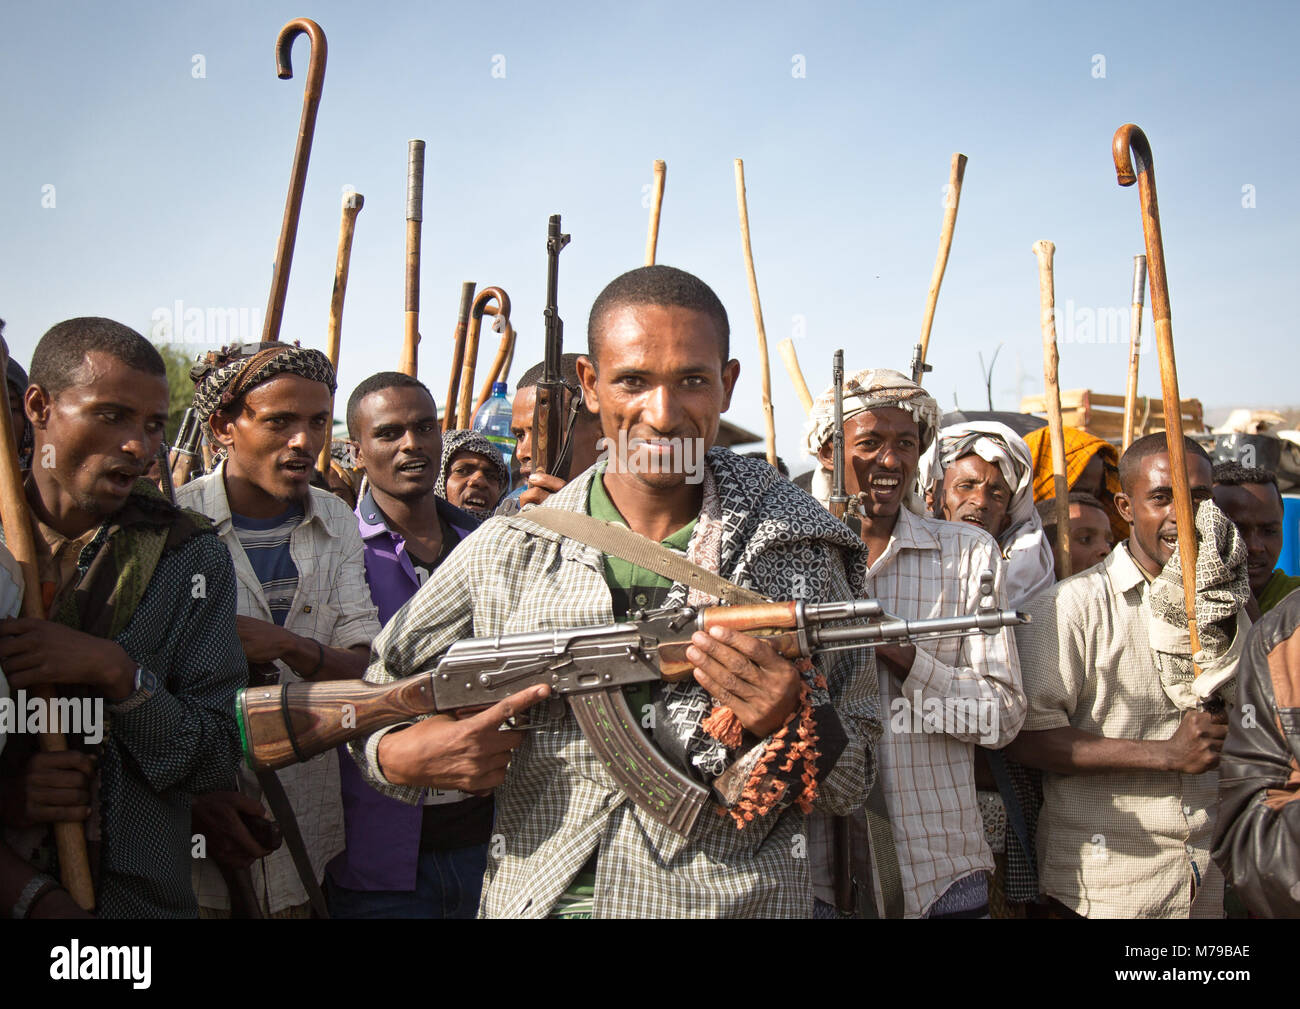 Oromo man proudly displaying his kalachnikov during a wedding here all men and boys are holding sticks, Canes and Stock Photo